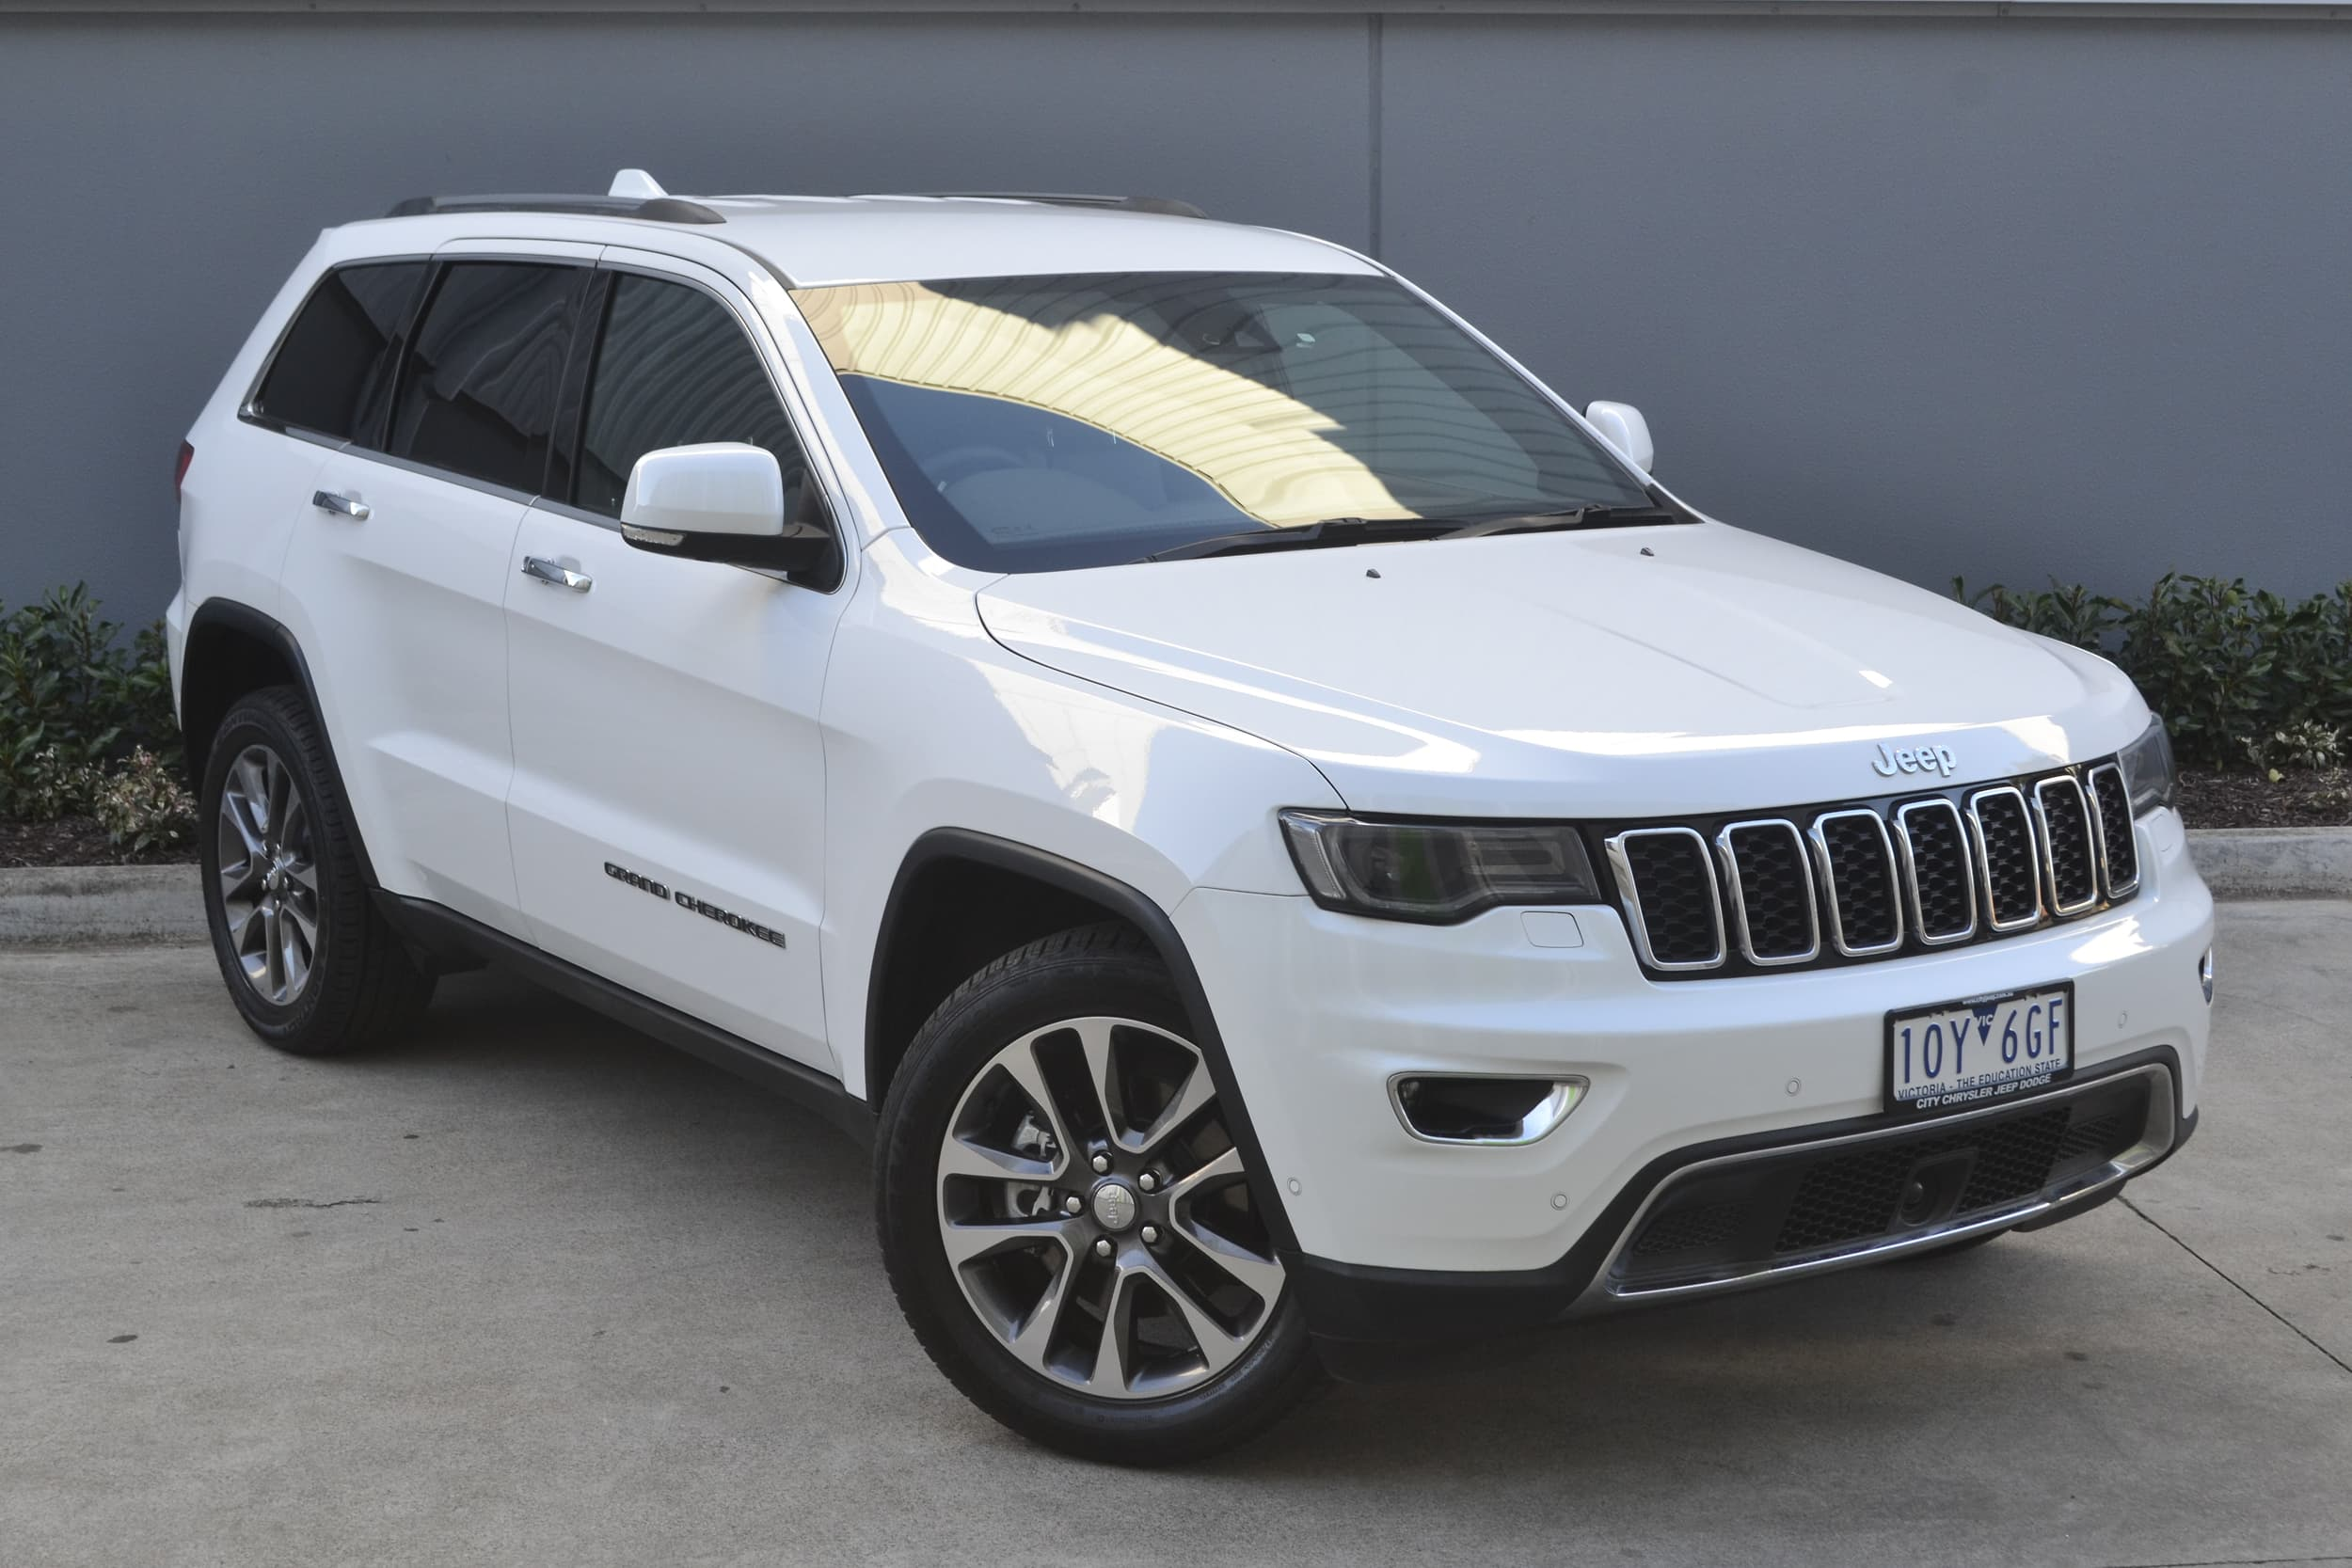 2019 Jeep Grand Cherokee Limited Auto 4x4 MY19 - image 7